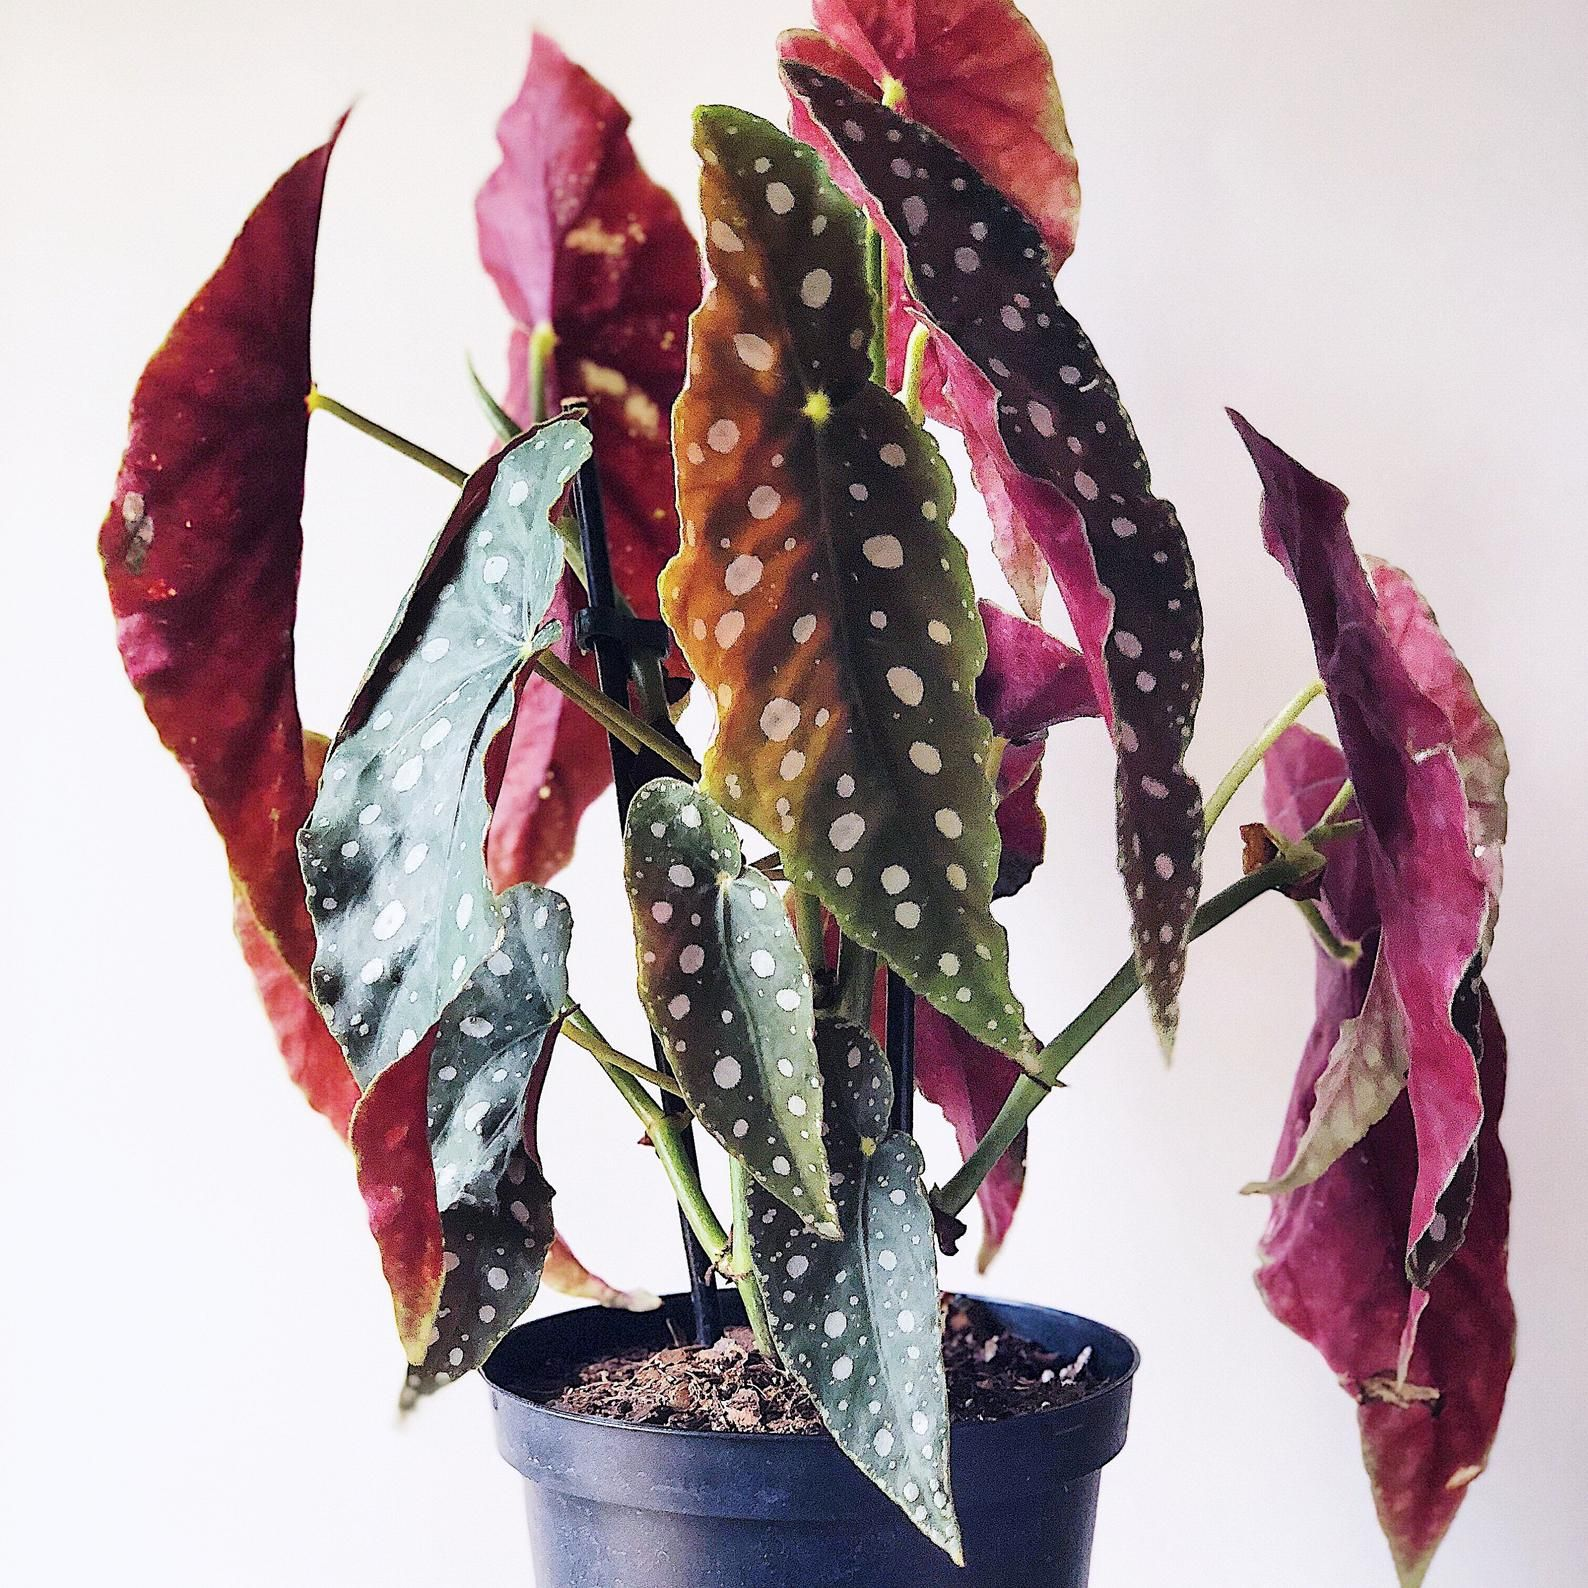 Angel wing begonia live house plants tropical plants